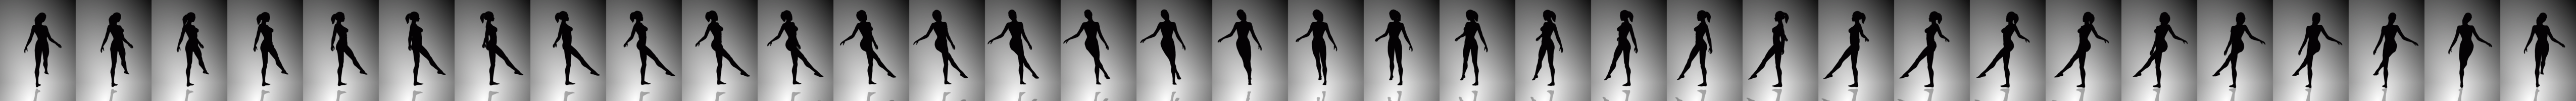 Spinning Dancer - Frames.png